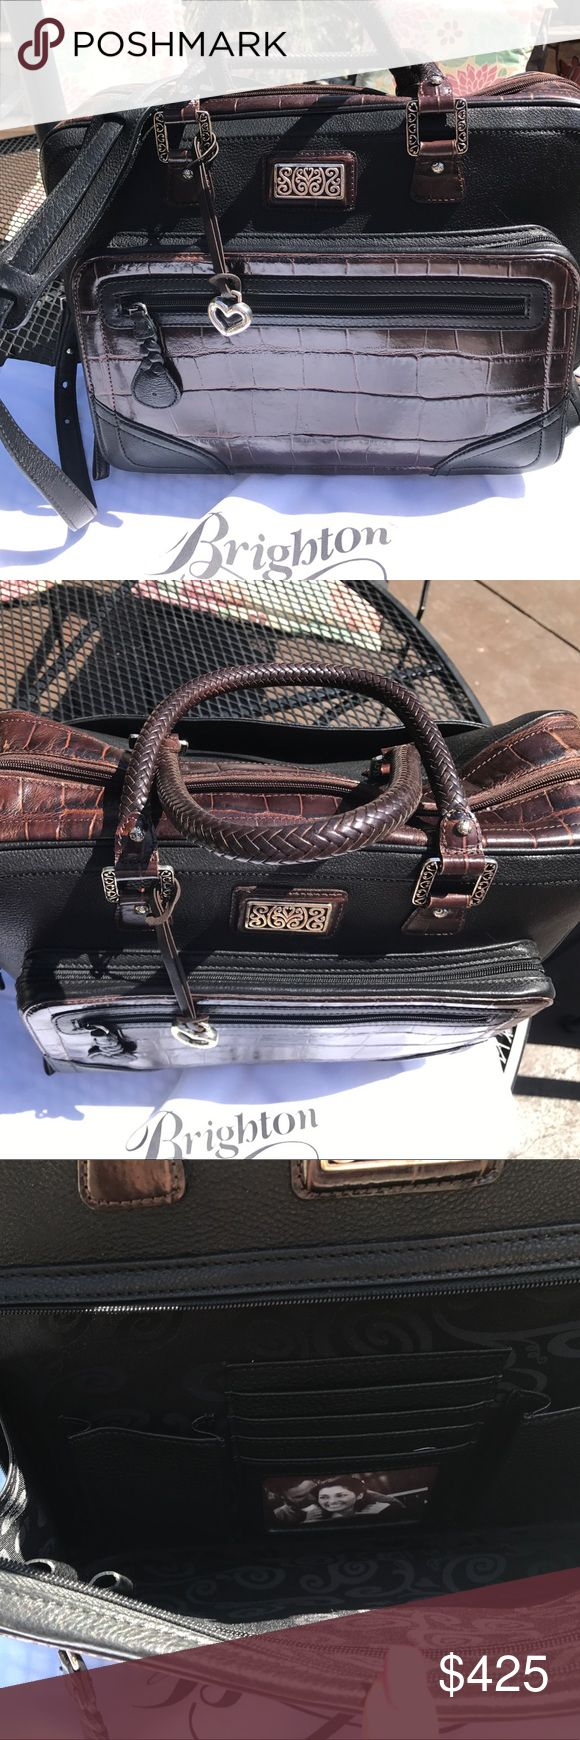 Brighton❤️ Keaton 🌸 Briefcase 💼 w/ laptop pouch 4th 🎉 July SALE Brighton Keaton Briefcase w/Blk-Choc signature detailing. Recently reconditioned. Front zip closure w/organized interior. Also includes pull out laptop pouch w/ signature styling. This is a rare Brighton piece in excellent condition! Brighton Bags Travel Bags